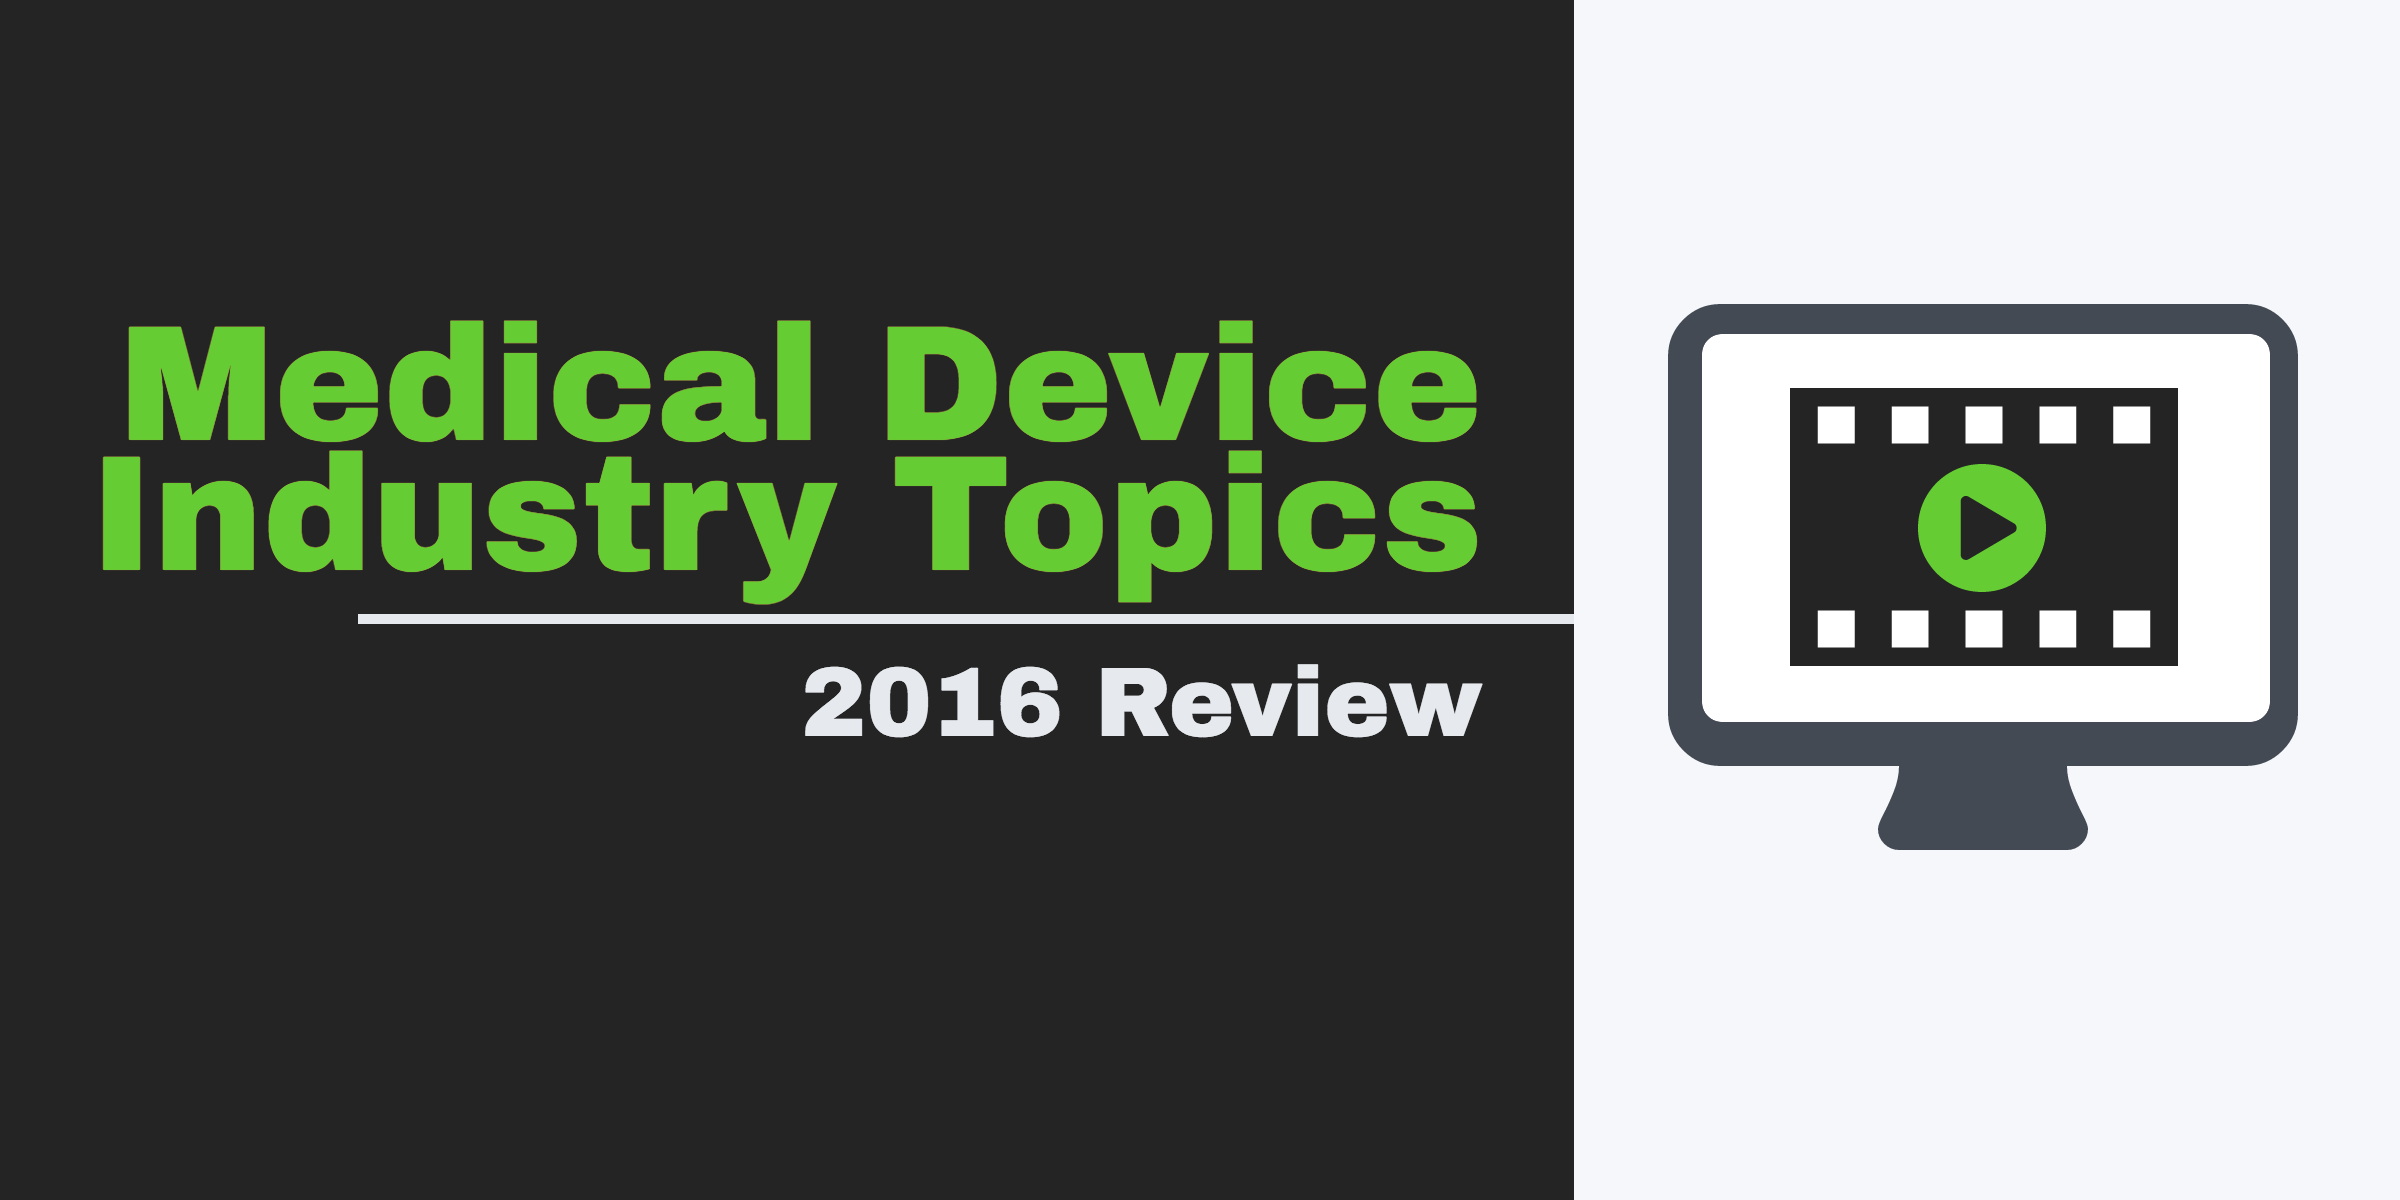 2016_medical_device_industry_topics.png